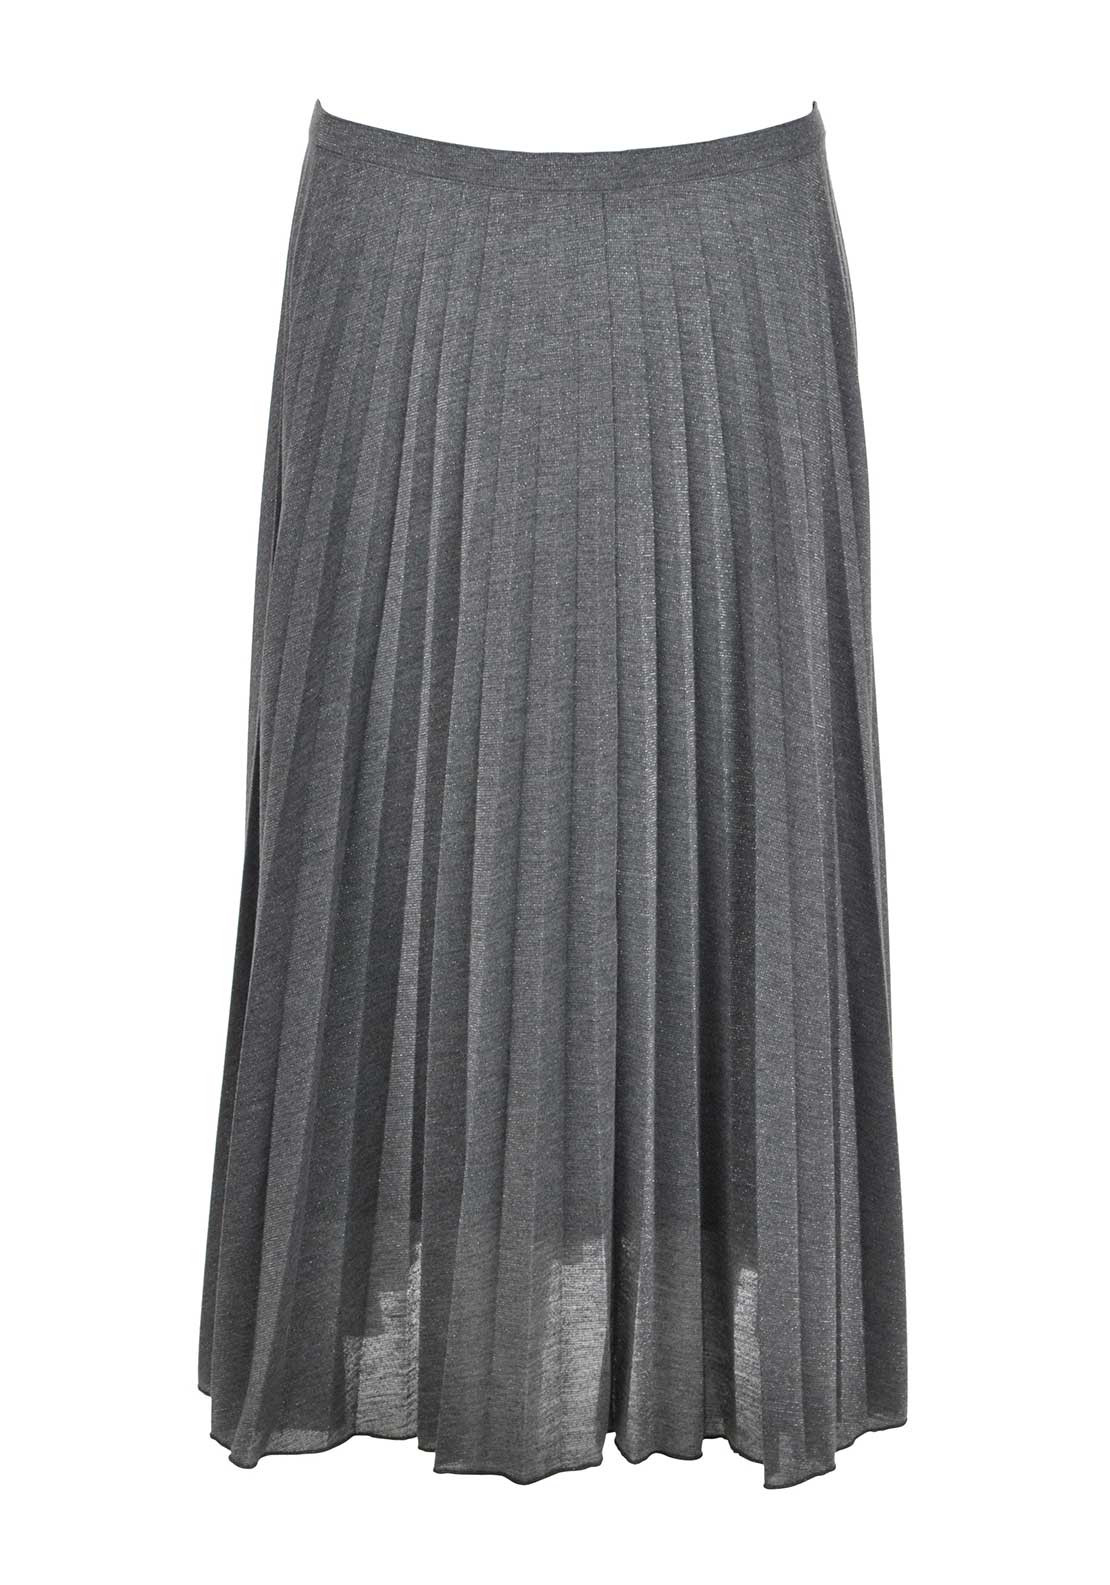 Apanage Metallic Shimmer Pleated Jersey Midi Skirt, Grey